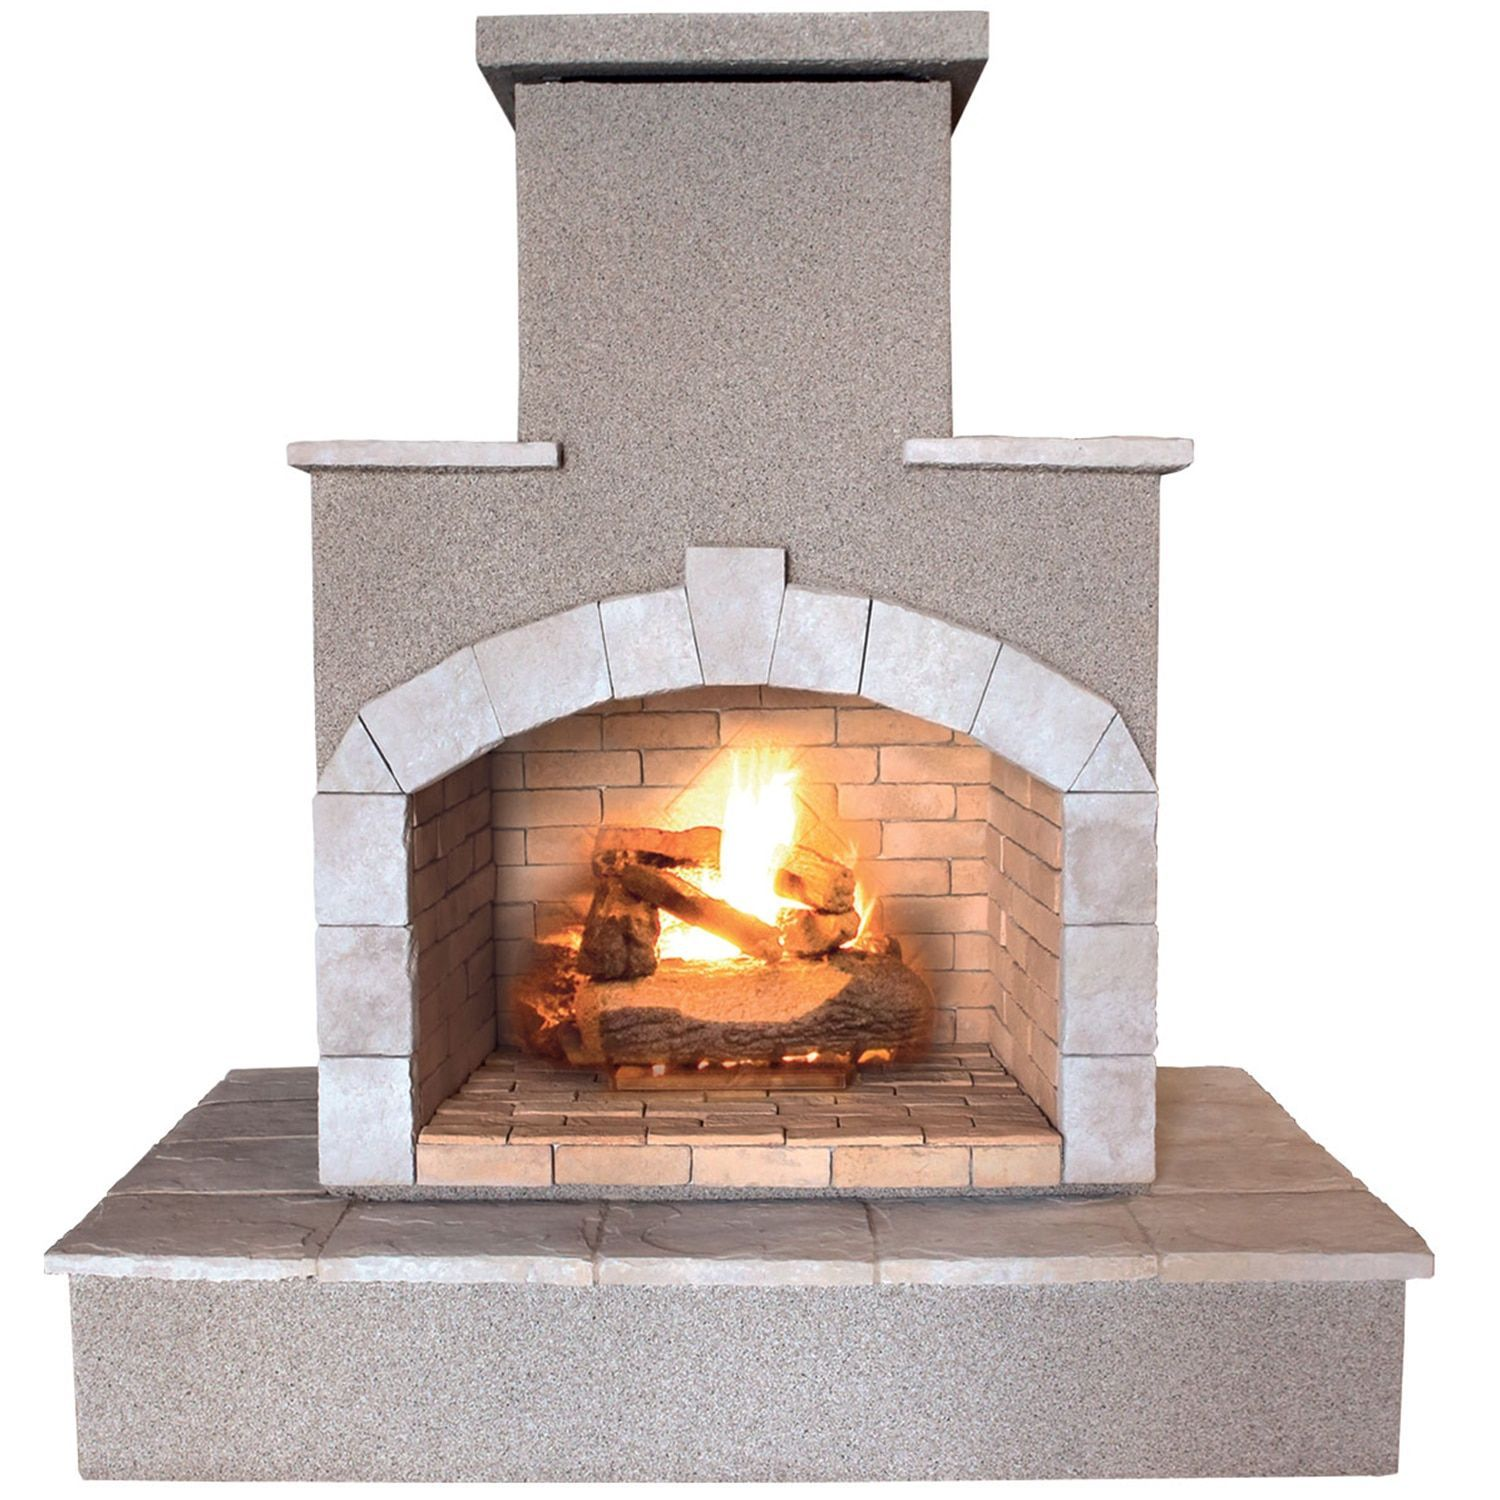 Cal Flame 78-inch Propane Gas Outdoor Fireplace, Brown (Stone Finish), Outdoor Décor